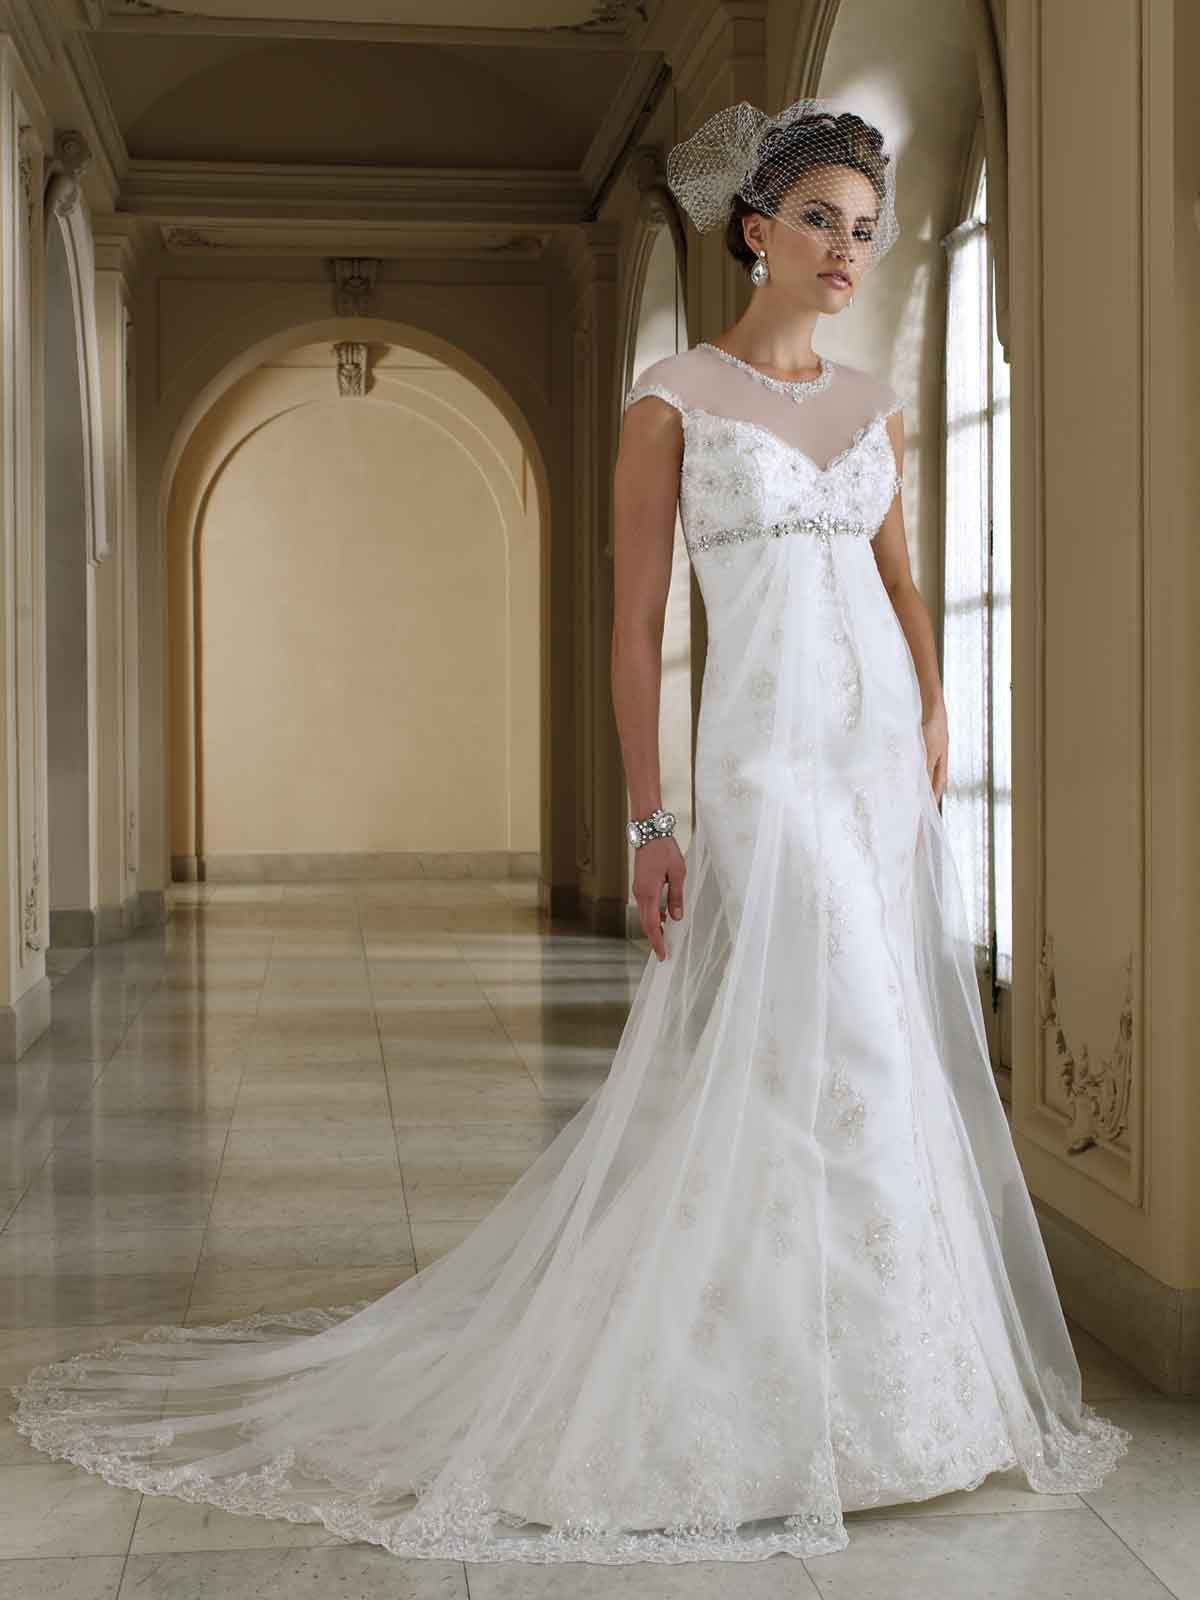 2019 year lifestyle- Wedding Maternity dresses under 100 pictures